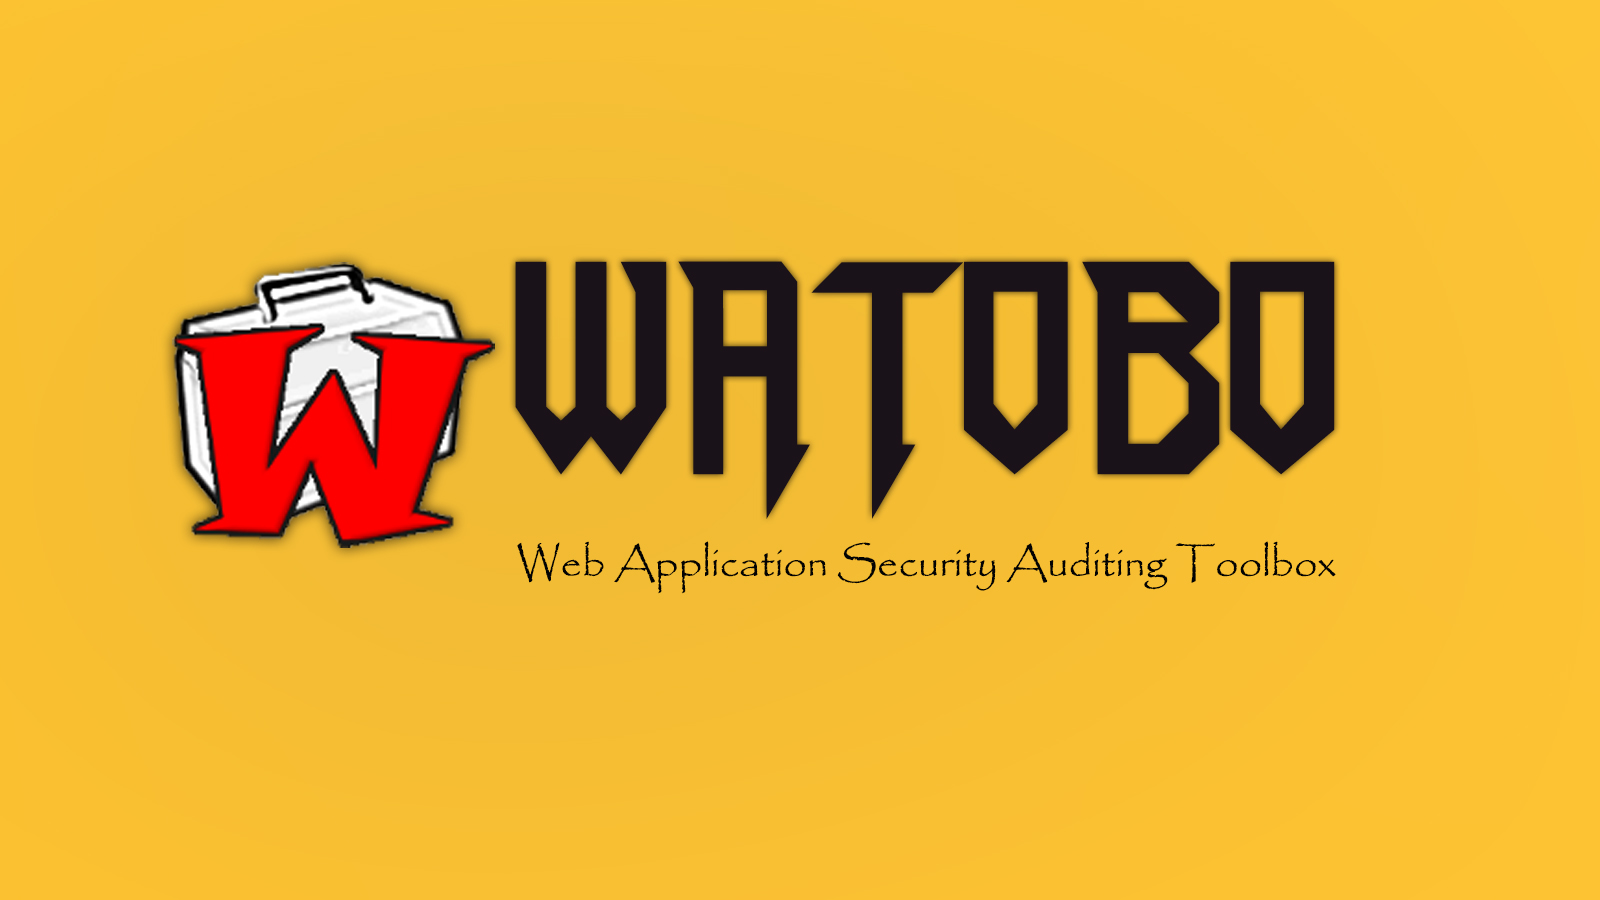 WATOBO - Web Application Security Auditing Toolbox